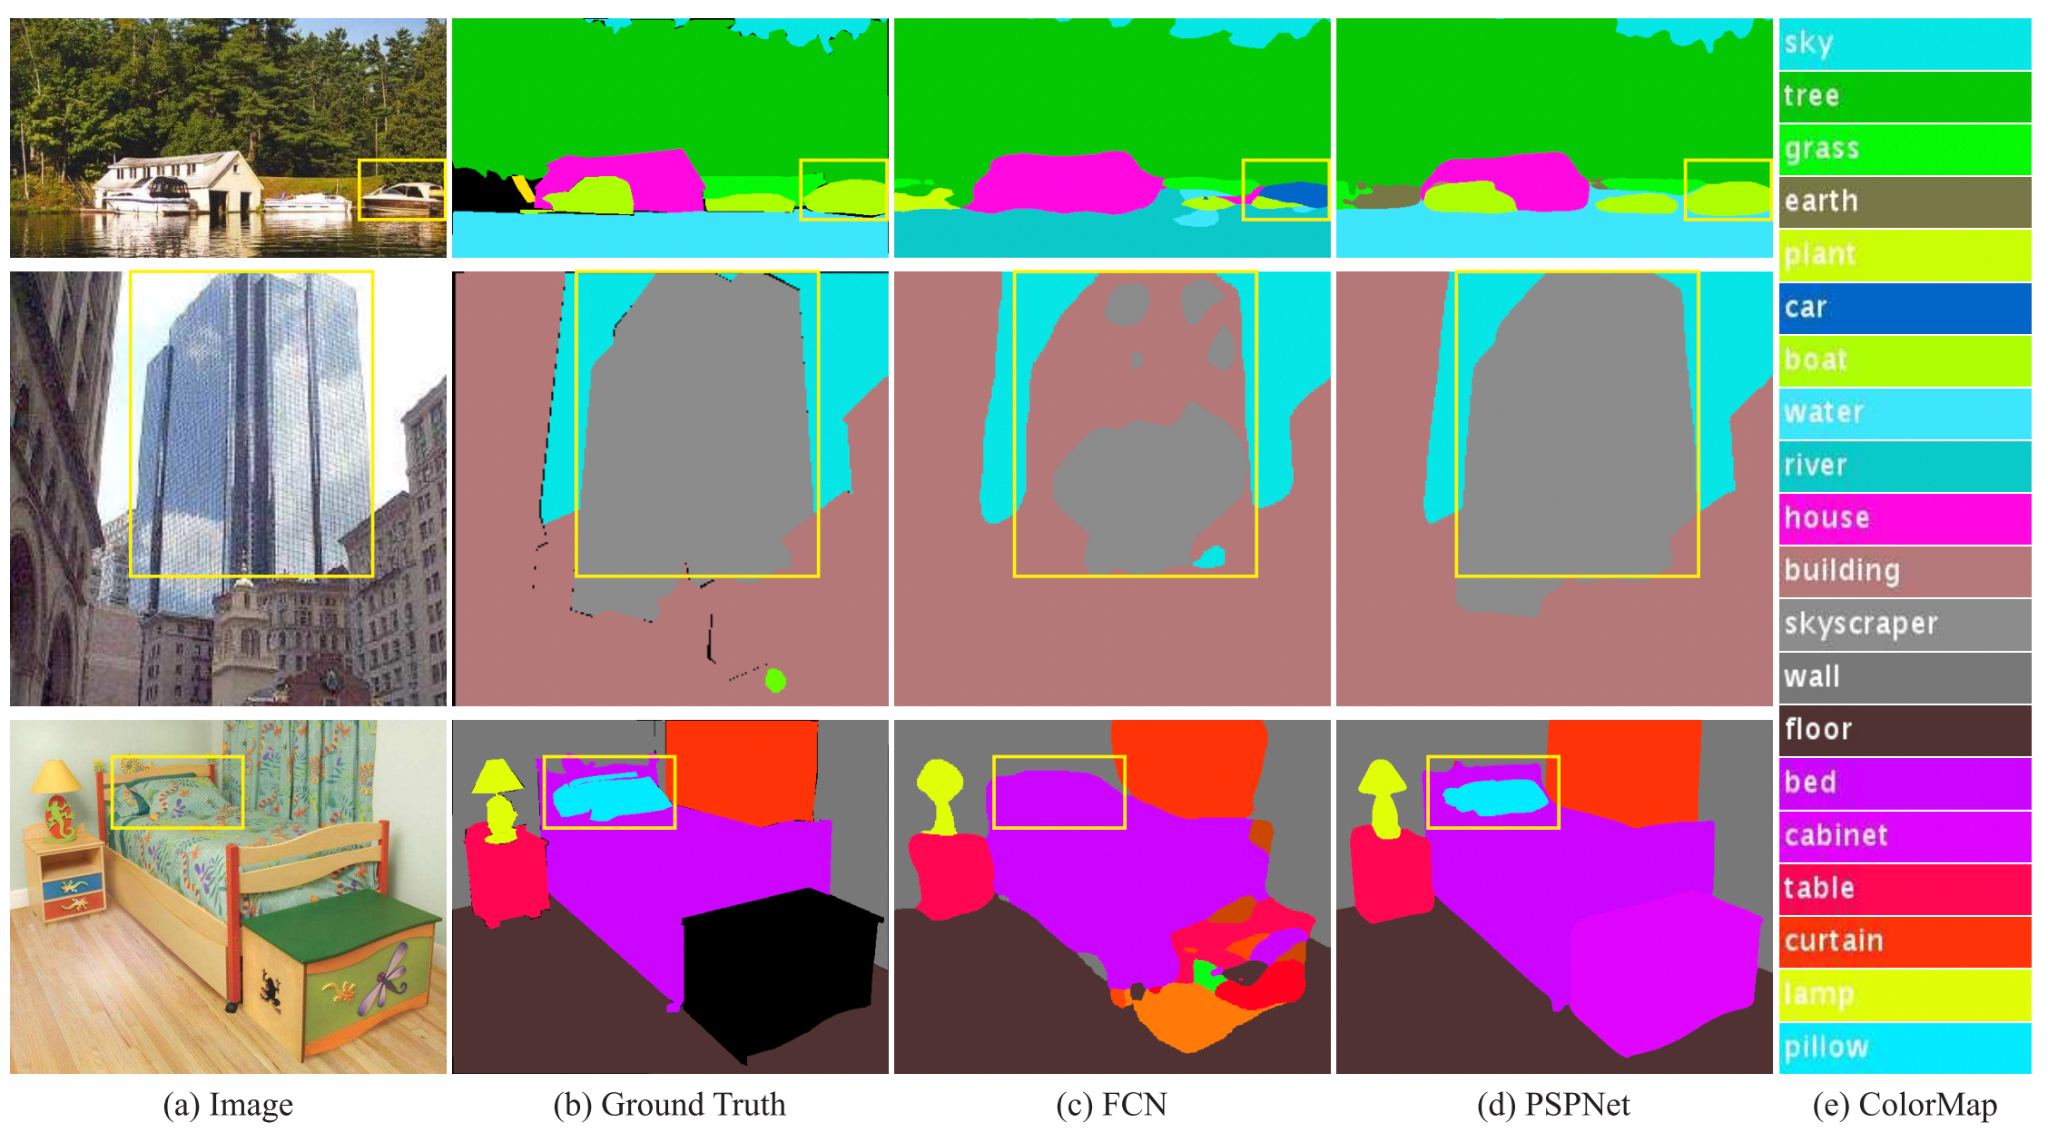 A comparison between FCN and PSPNet in performing semantic segmentation